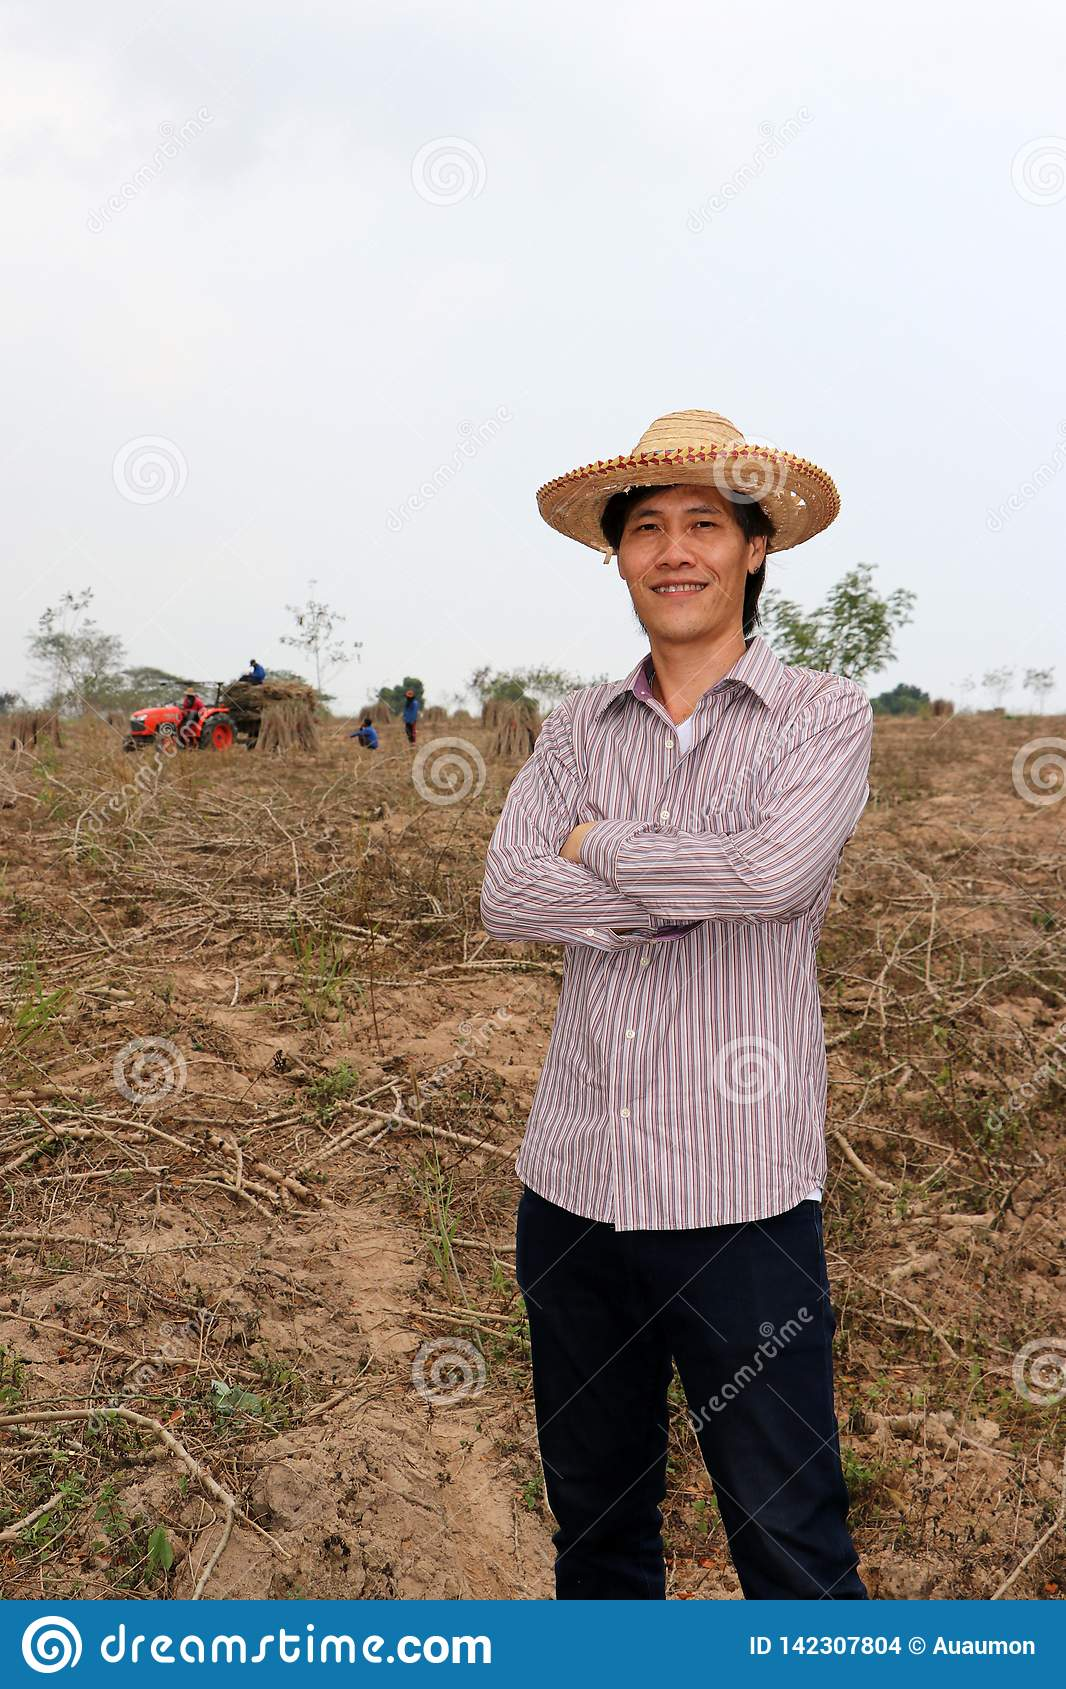 Male farmer standing and hugging chest in the cassava farm